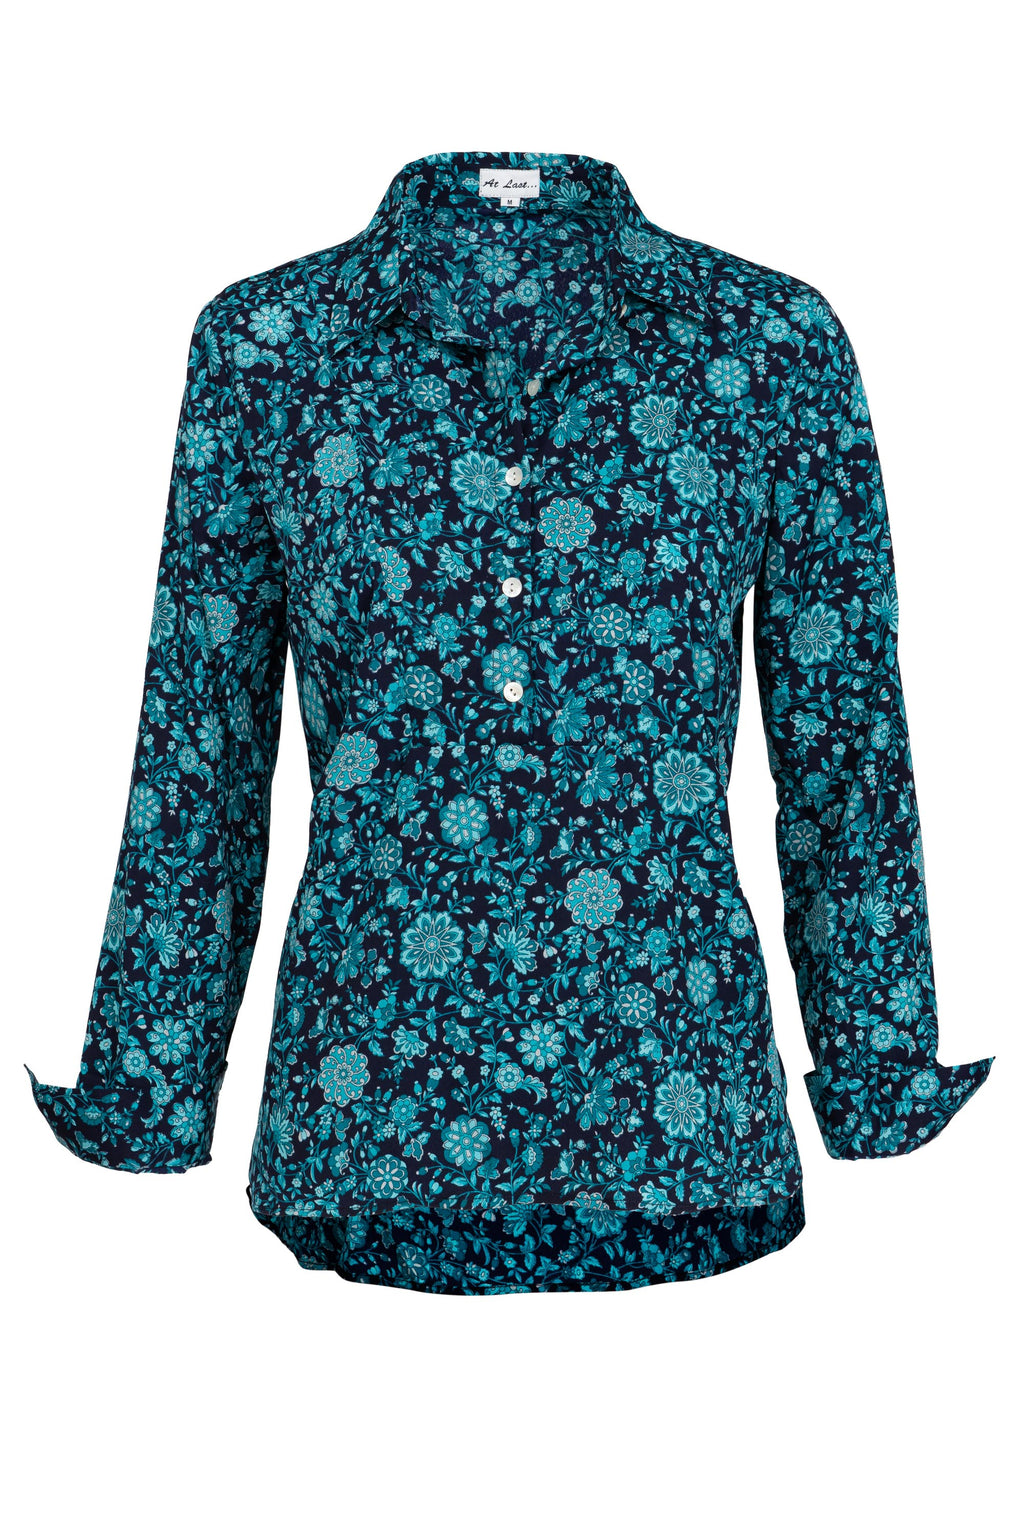 Soho Shirt with Back Detail - Turquoise Flower